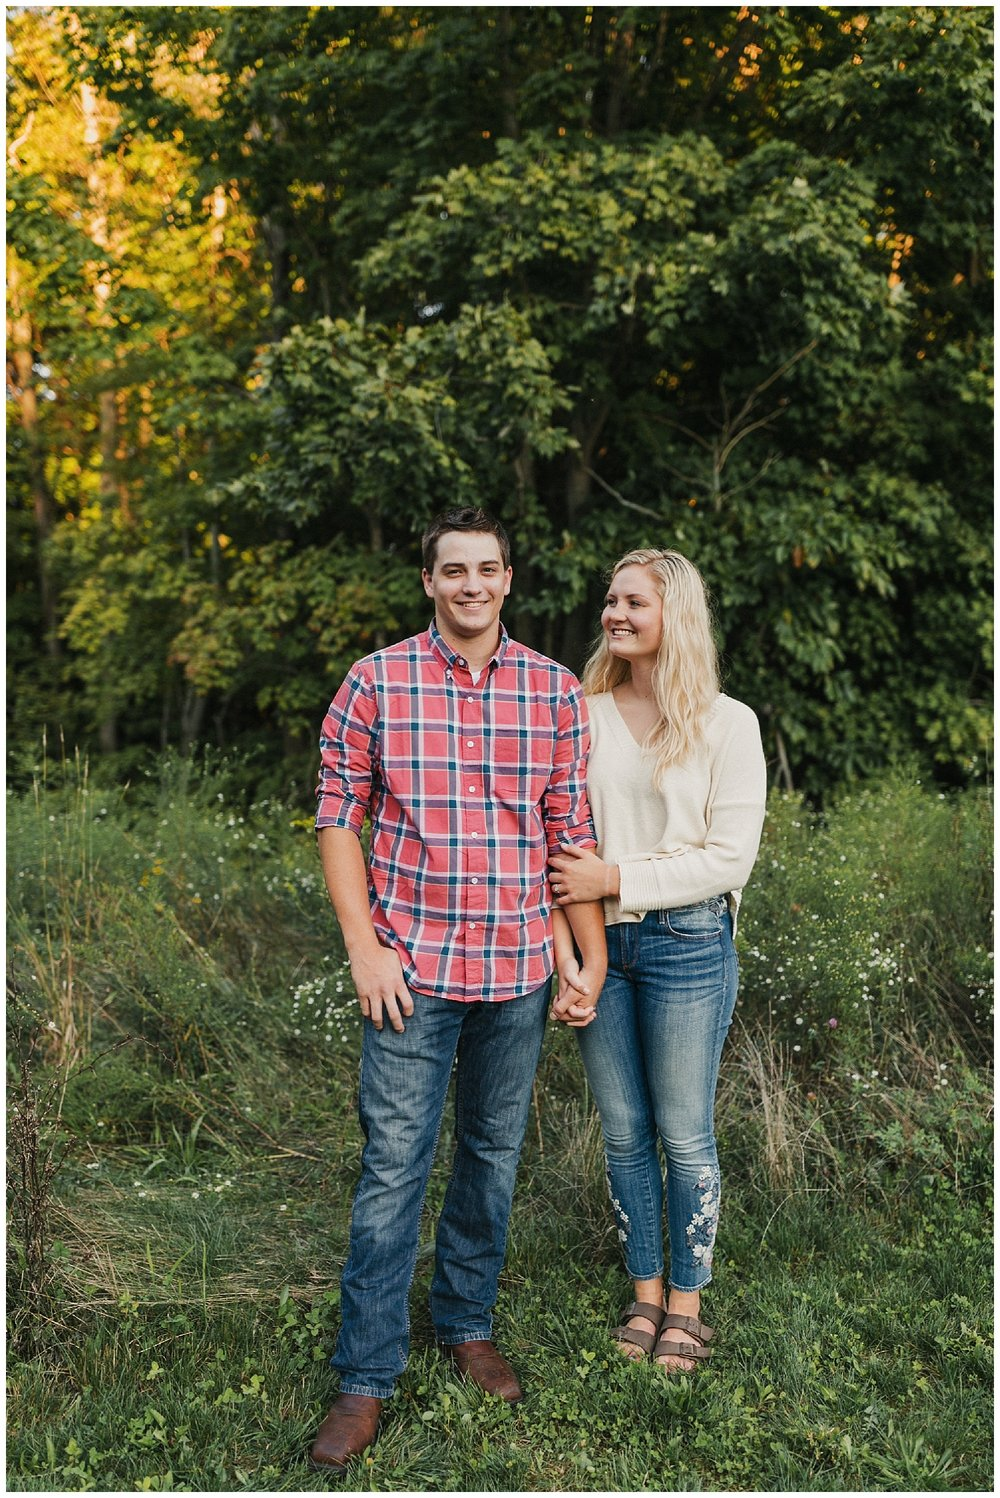 lindybeth photography - engagement pictures - lily derek-128.jpg